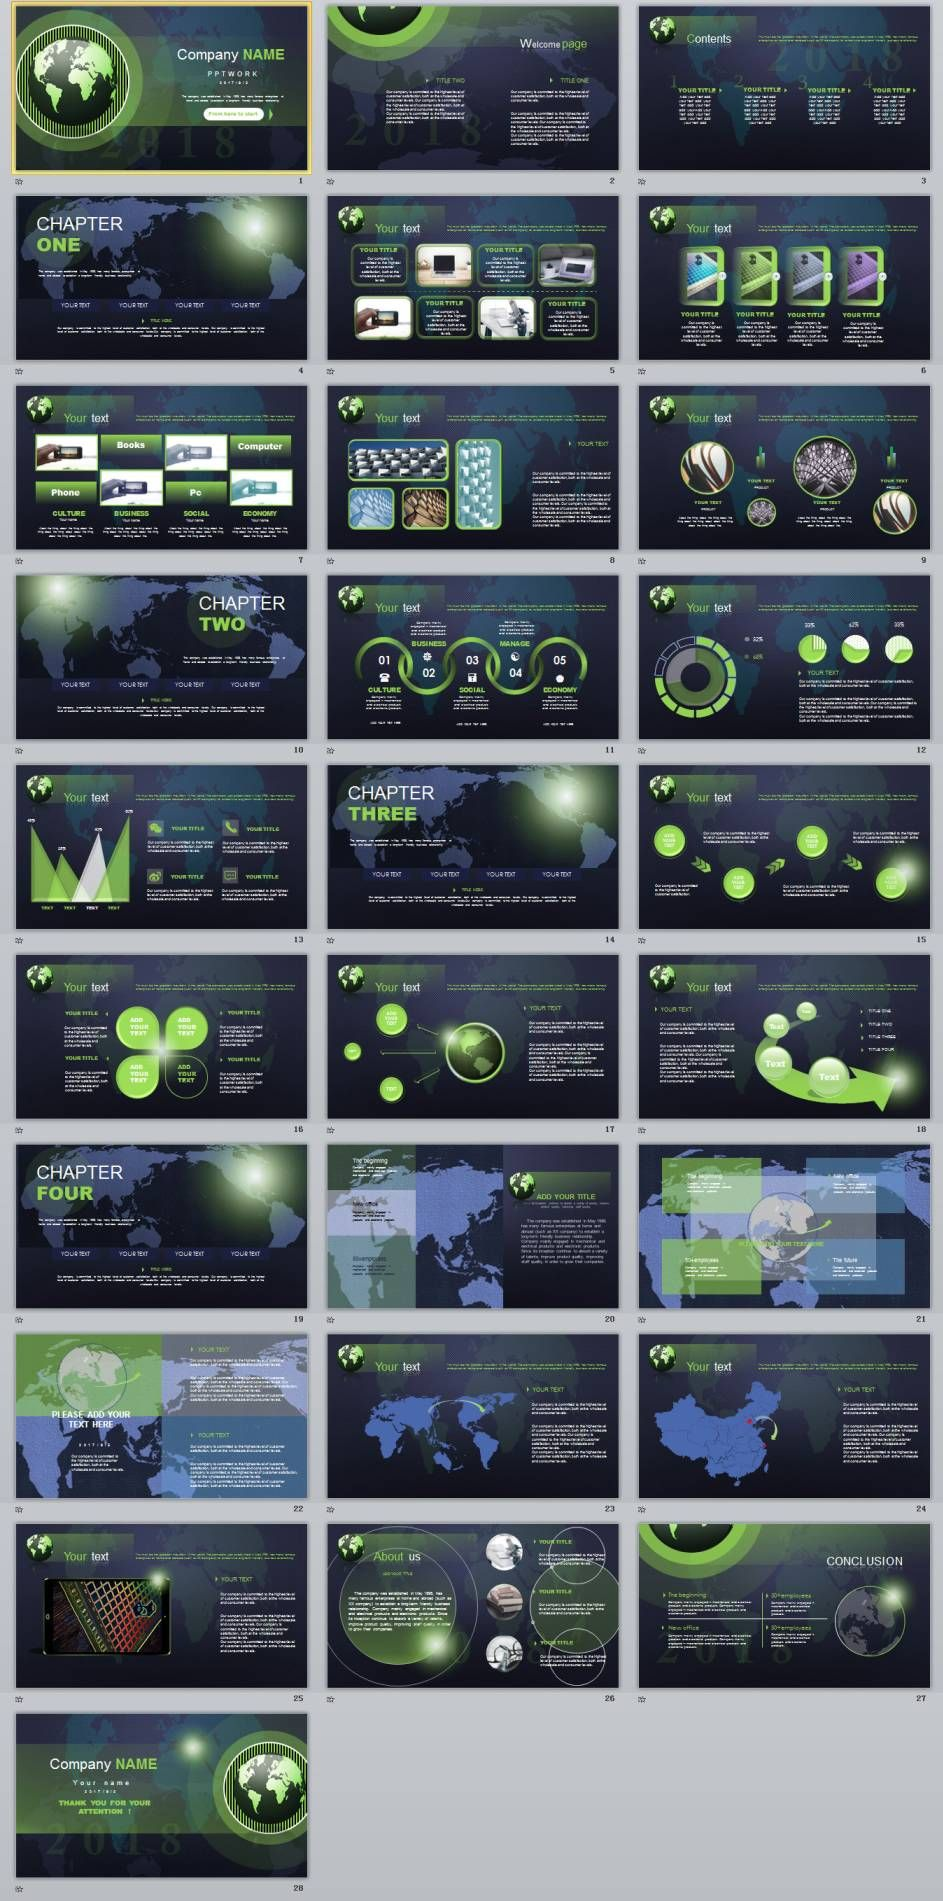 28 company cool introduction powerpoint template presentation